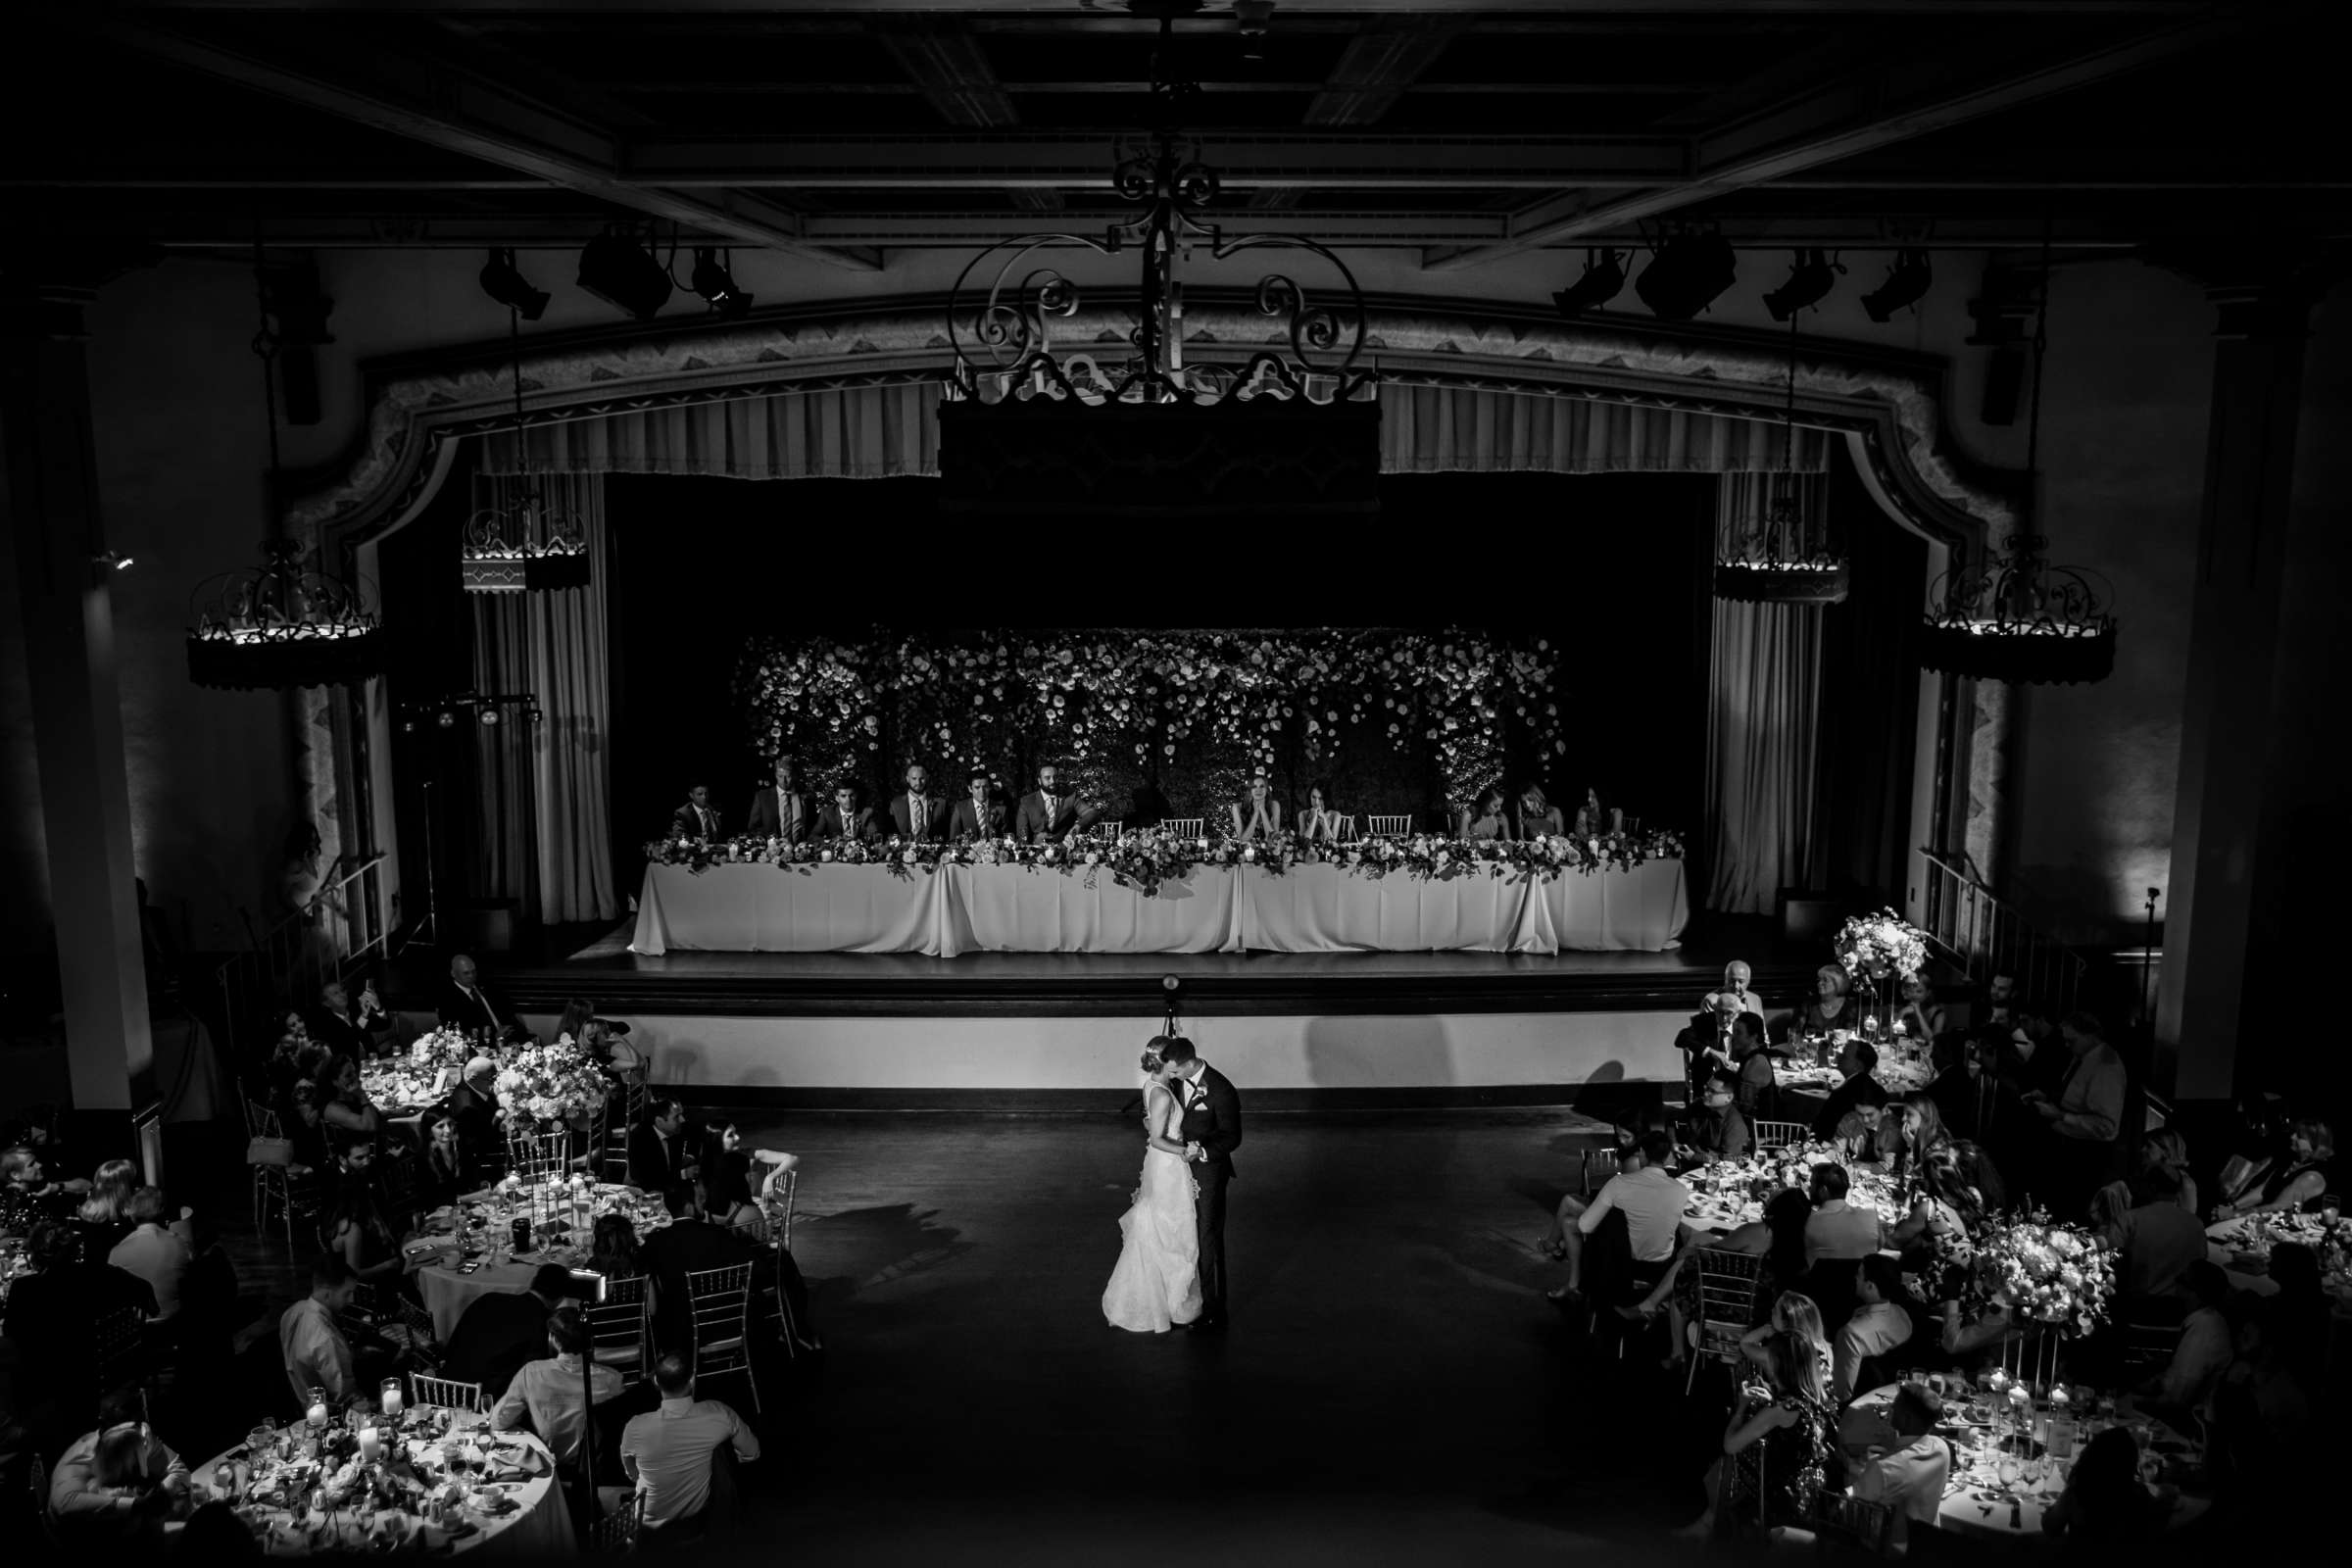 The Prado Wedding coordinated by Bliss Events, Sara and Marvin Wedding Photo #559623 by True Photography